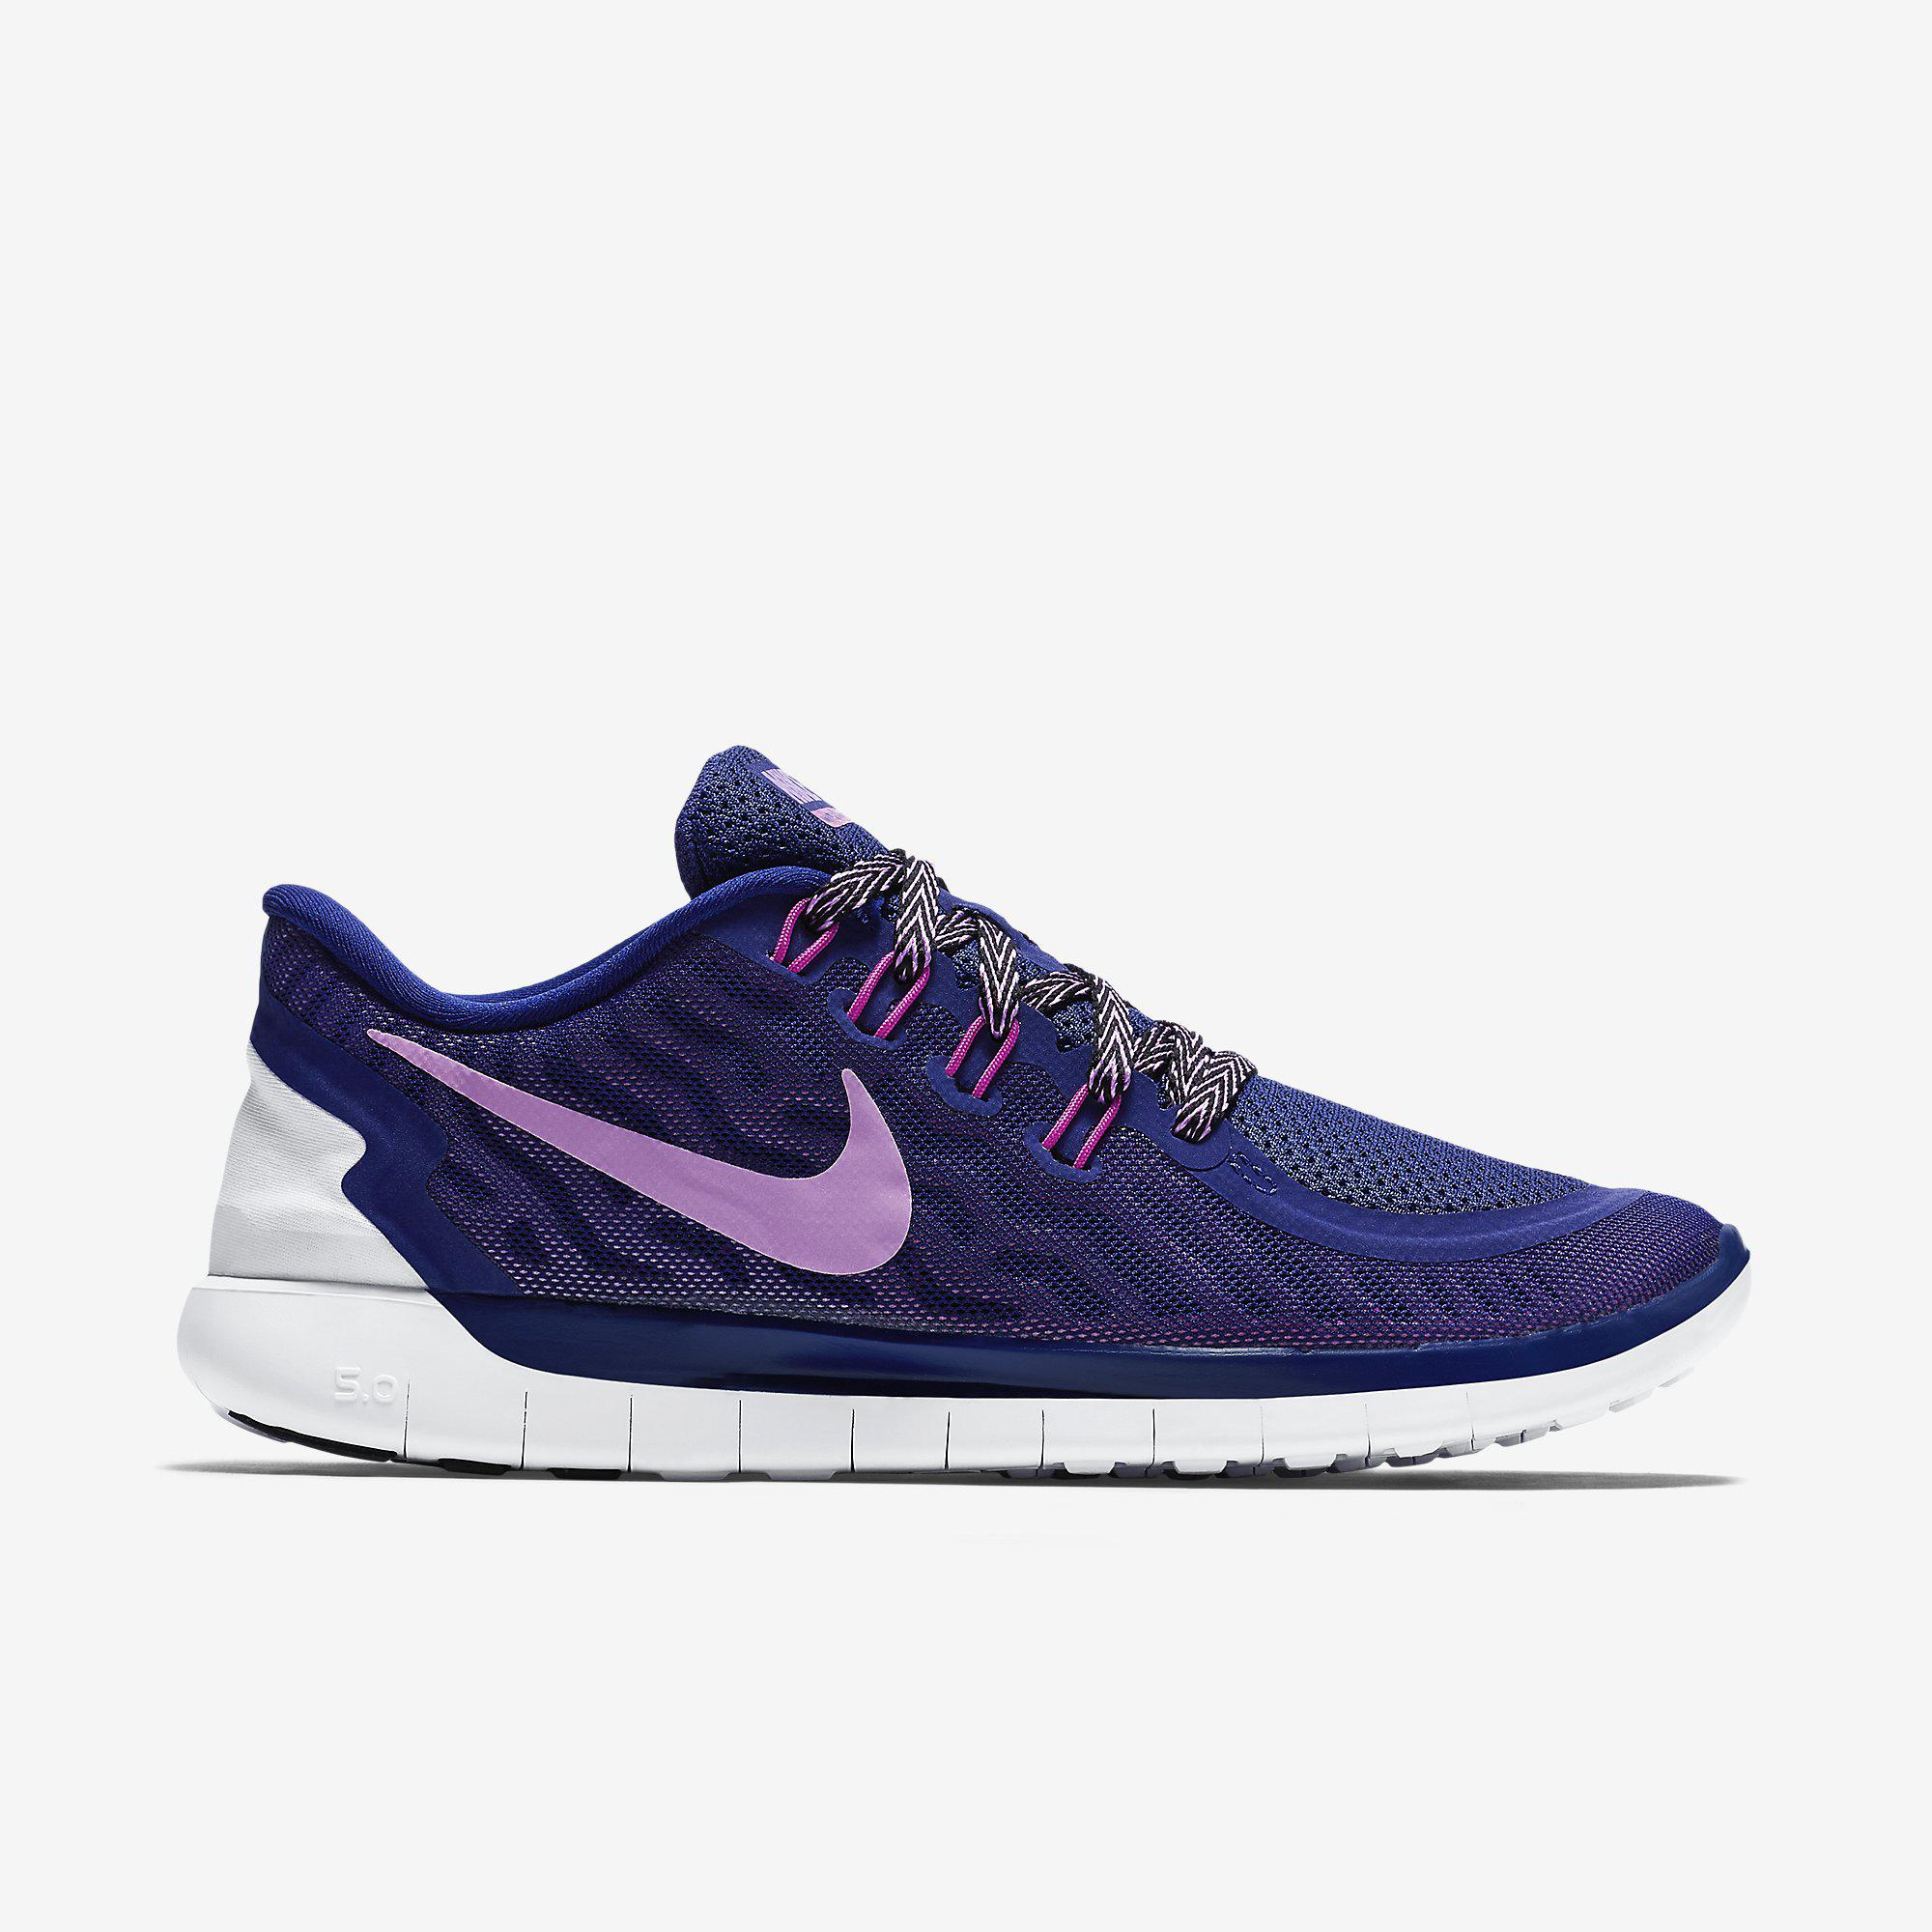 6acd824c1436 Nike Womens Free 5.0+ Running Shoes - Deep Royal Blue Fuchsia Flash -  Tennisnuts.com